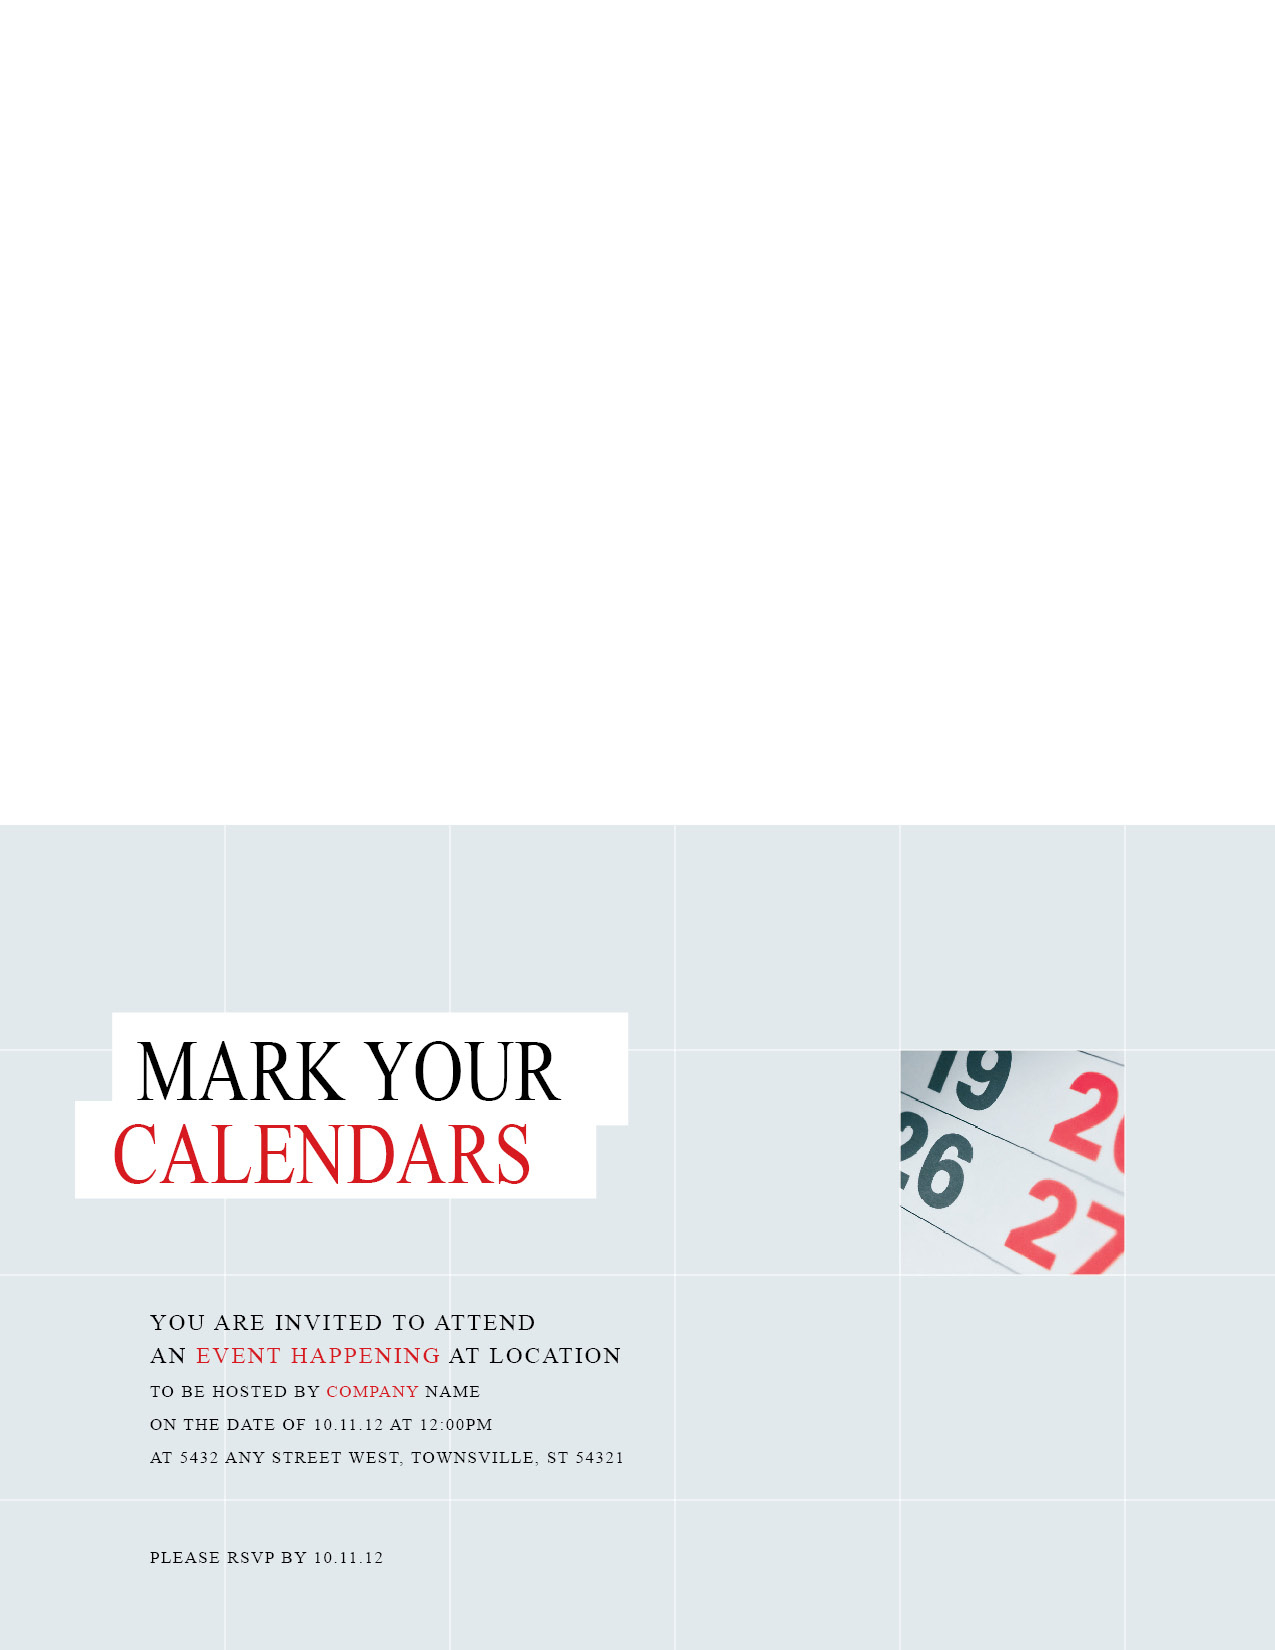 Customizable Every Door Direct Mail Template 10062 For With Regard To Save The Date Business Event Templates